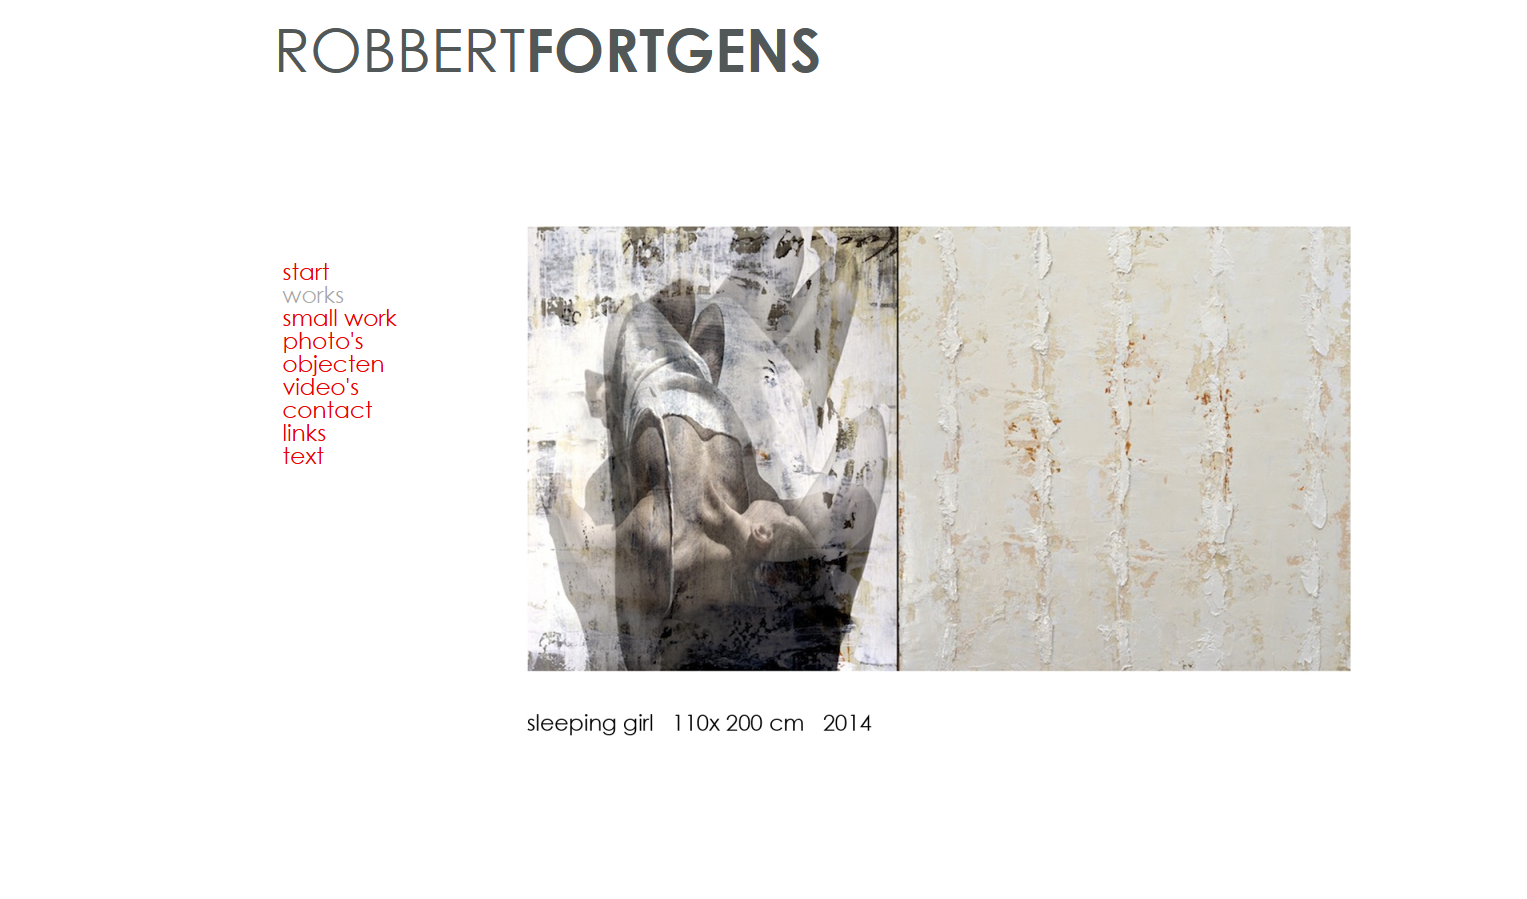 Robbertfortgens website